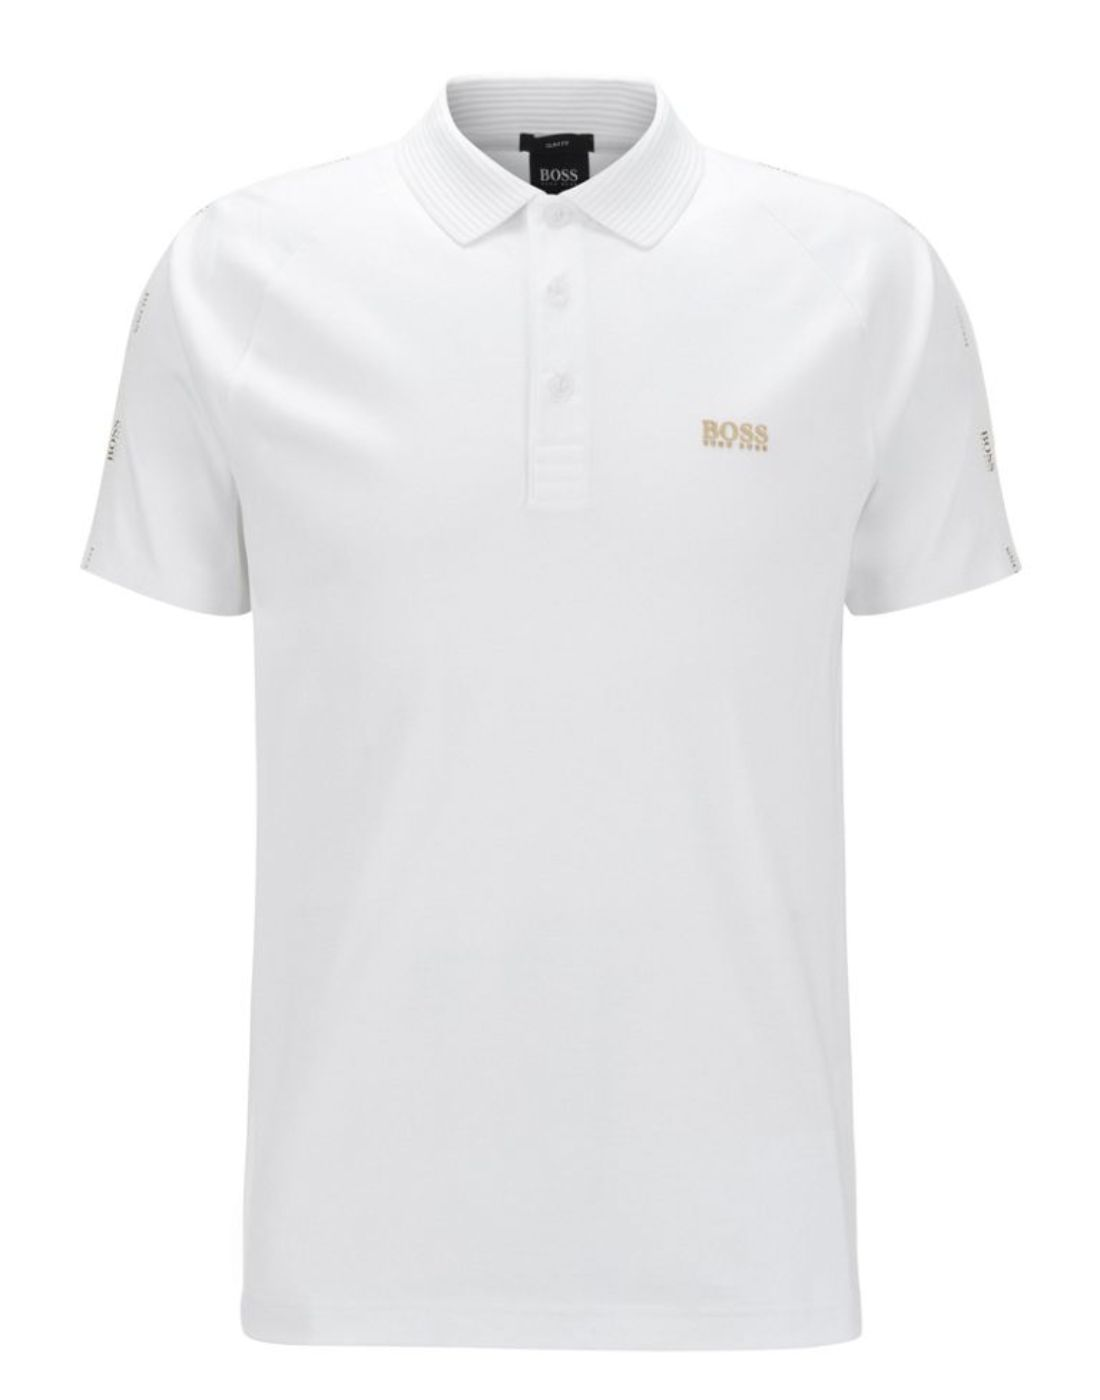 hugo boss white polo shirt with gold logo